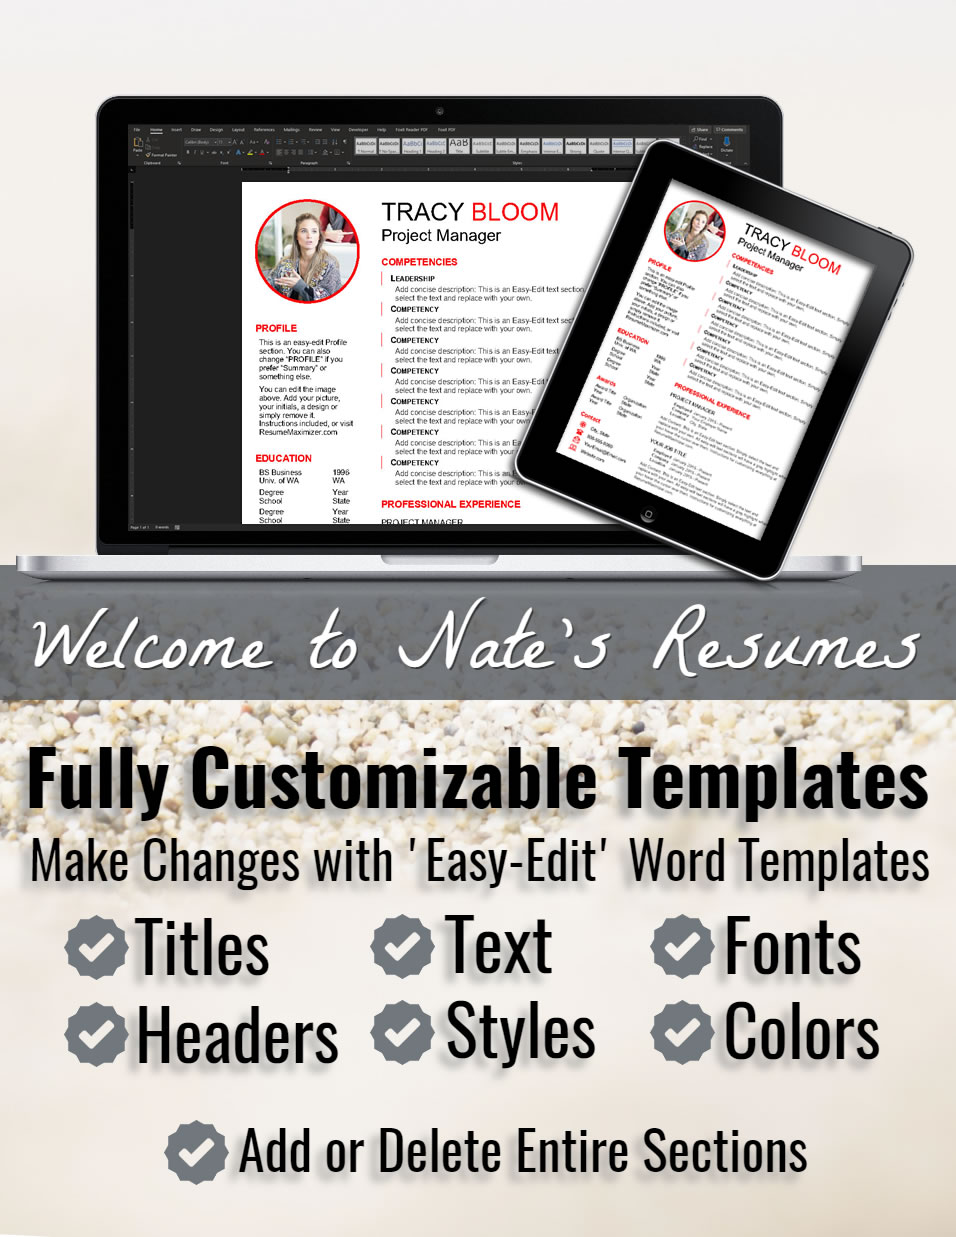 Revealed Pro - Make-Easy-Edits-to-Templates-LONG